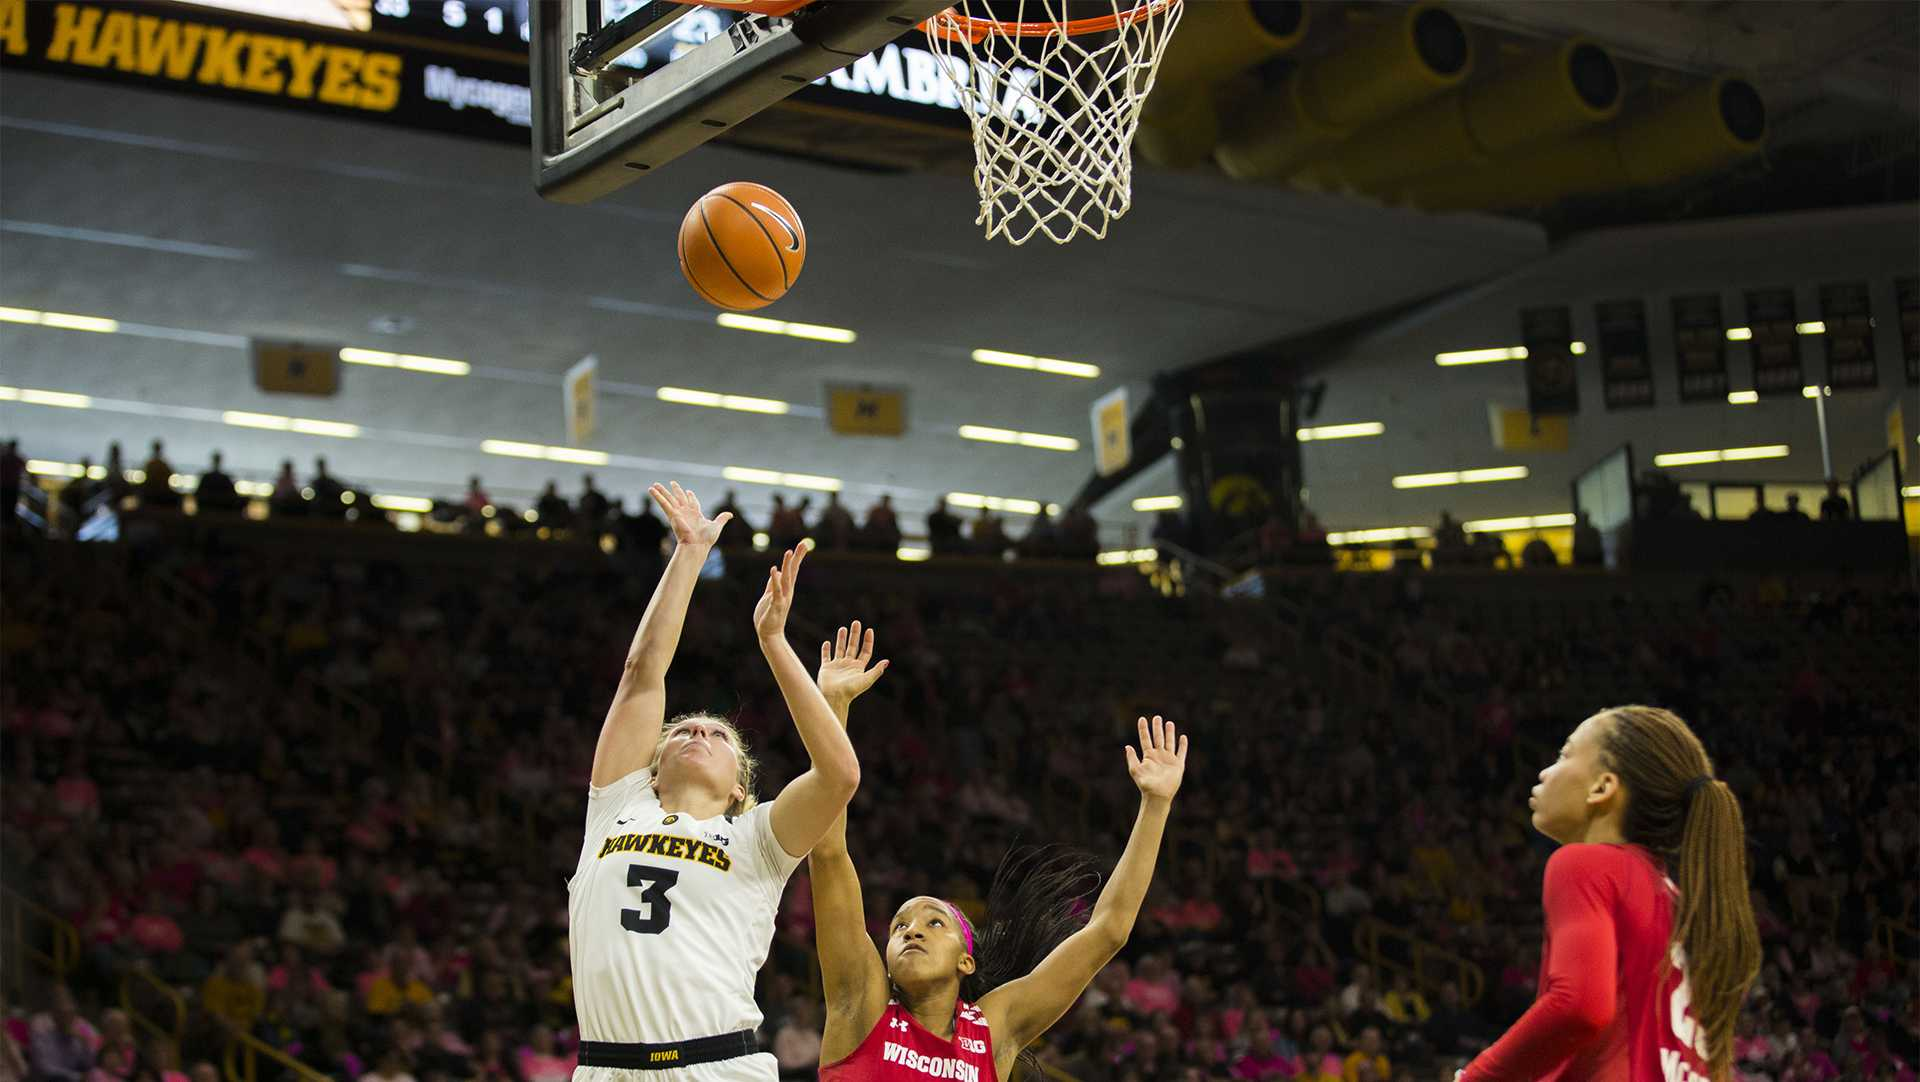 Iowa guard Makenzie Meyer attempts a shot during the Iowa/Wisconsin basketball game at Carver-Hawkeye Arena on Sunday, Feb. 18, 2018. The Hawkeyes defeated the Badgers, 88-61. (Lily Smith/The Daily Iowan)